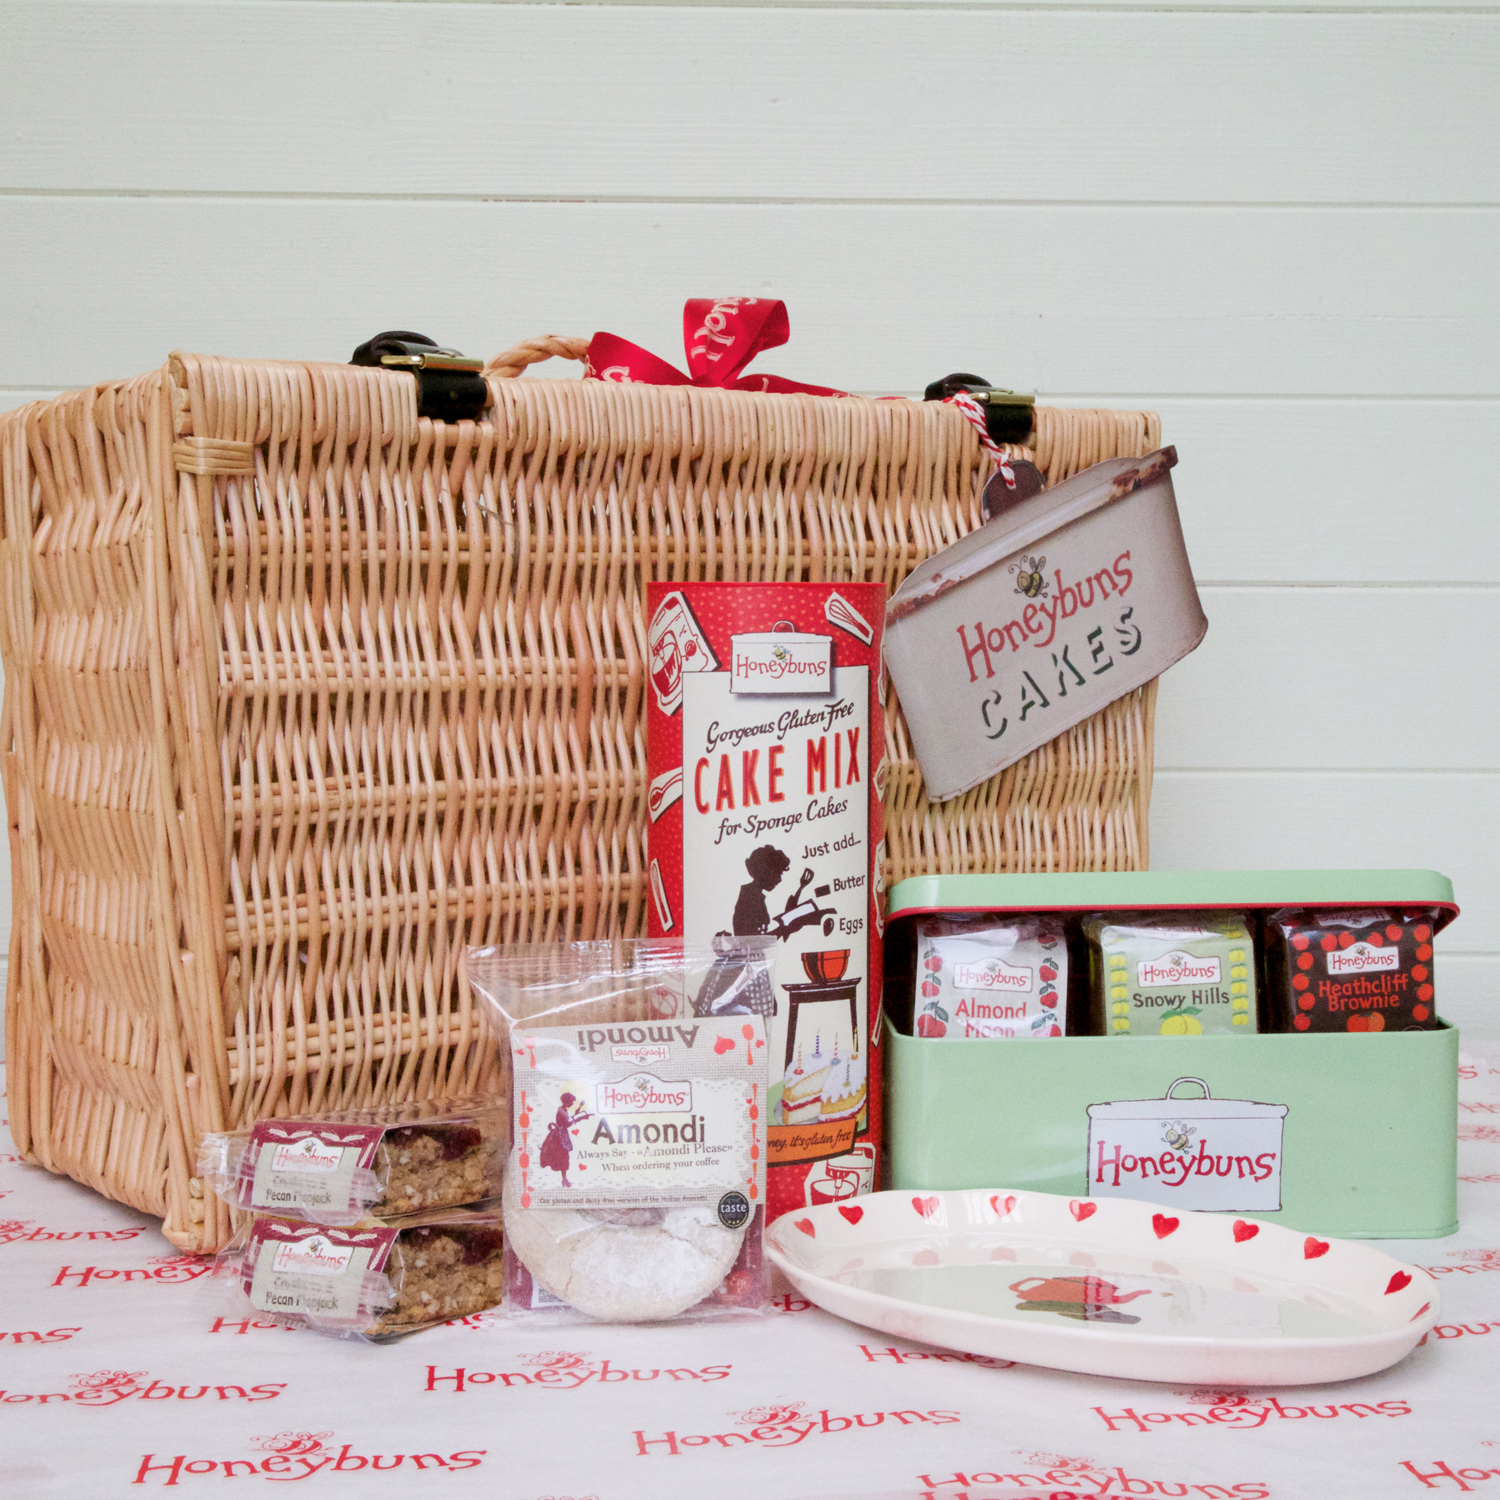 Afternoon tea hamper honeybuns honeybuns honeybuns gluten free afternoon tea hamper negle Choice Image